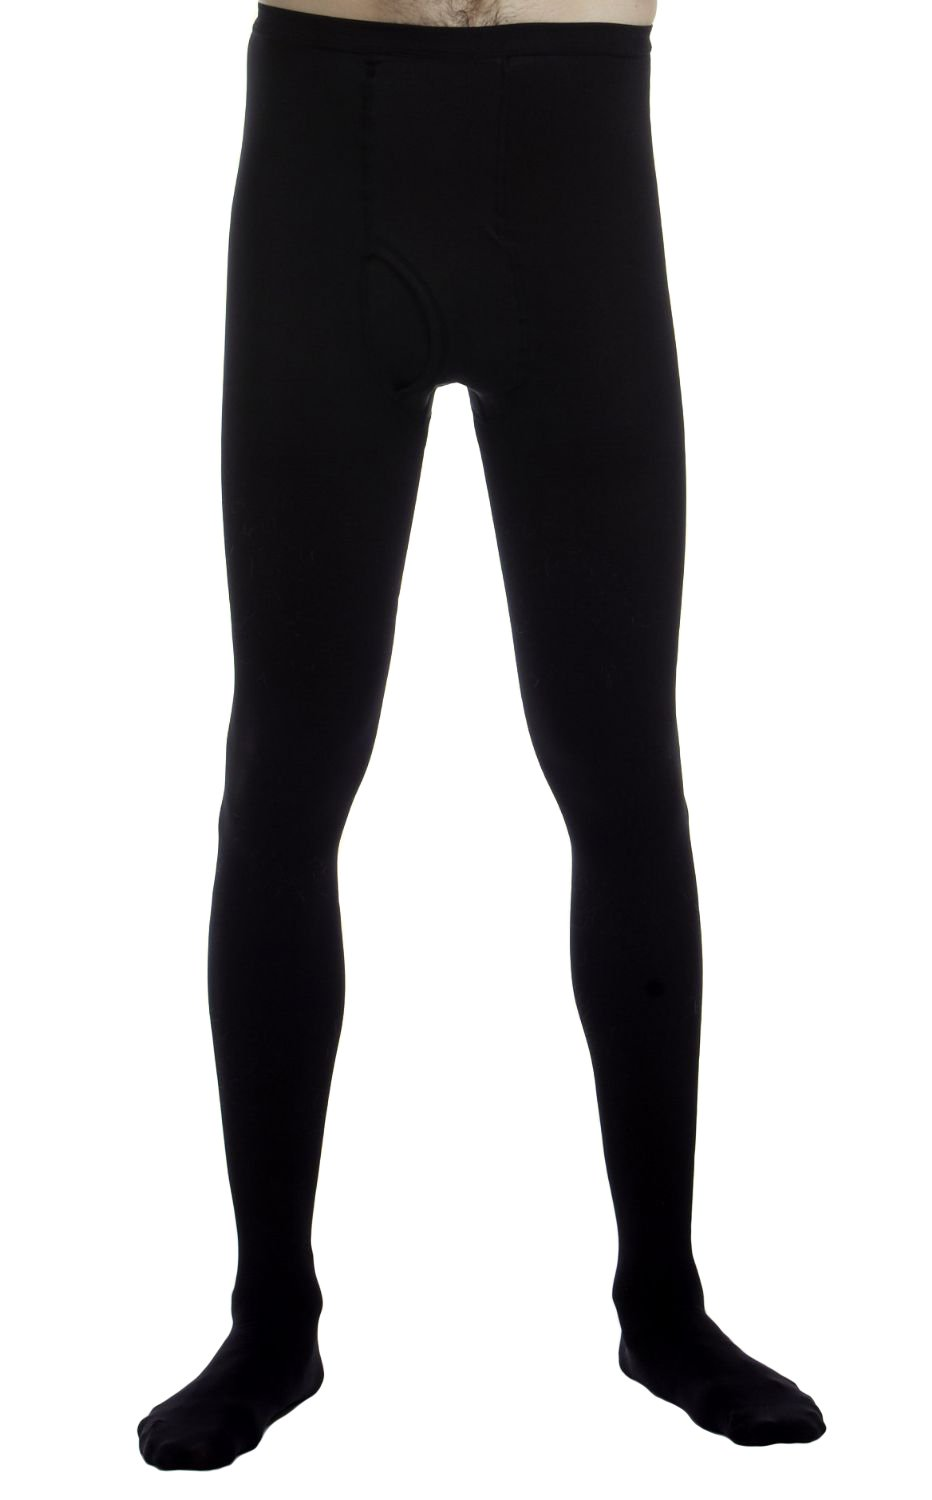 Compression Leotard Pantyhose for Men - Firm Graduated Support Full Length with Fly Opening 20-30mmHg Medical Compression, Closed Toe, Black Size XL Absolute Support - Made in The USA SKU: A234BL4